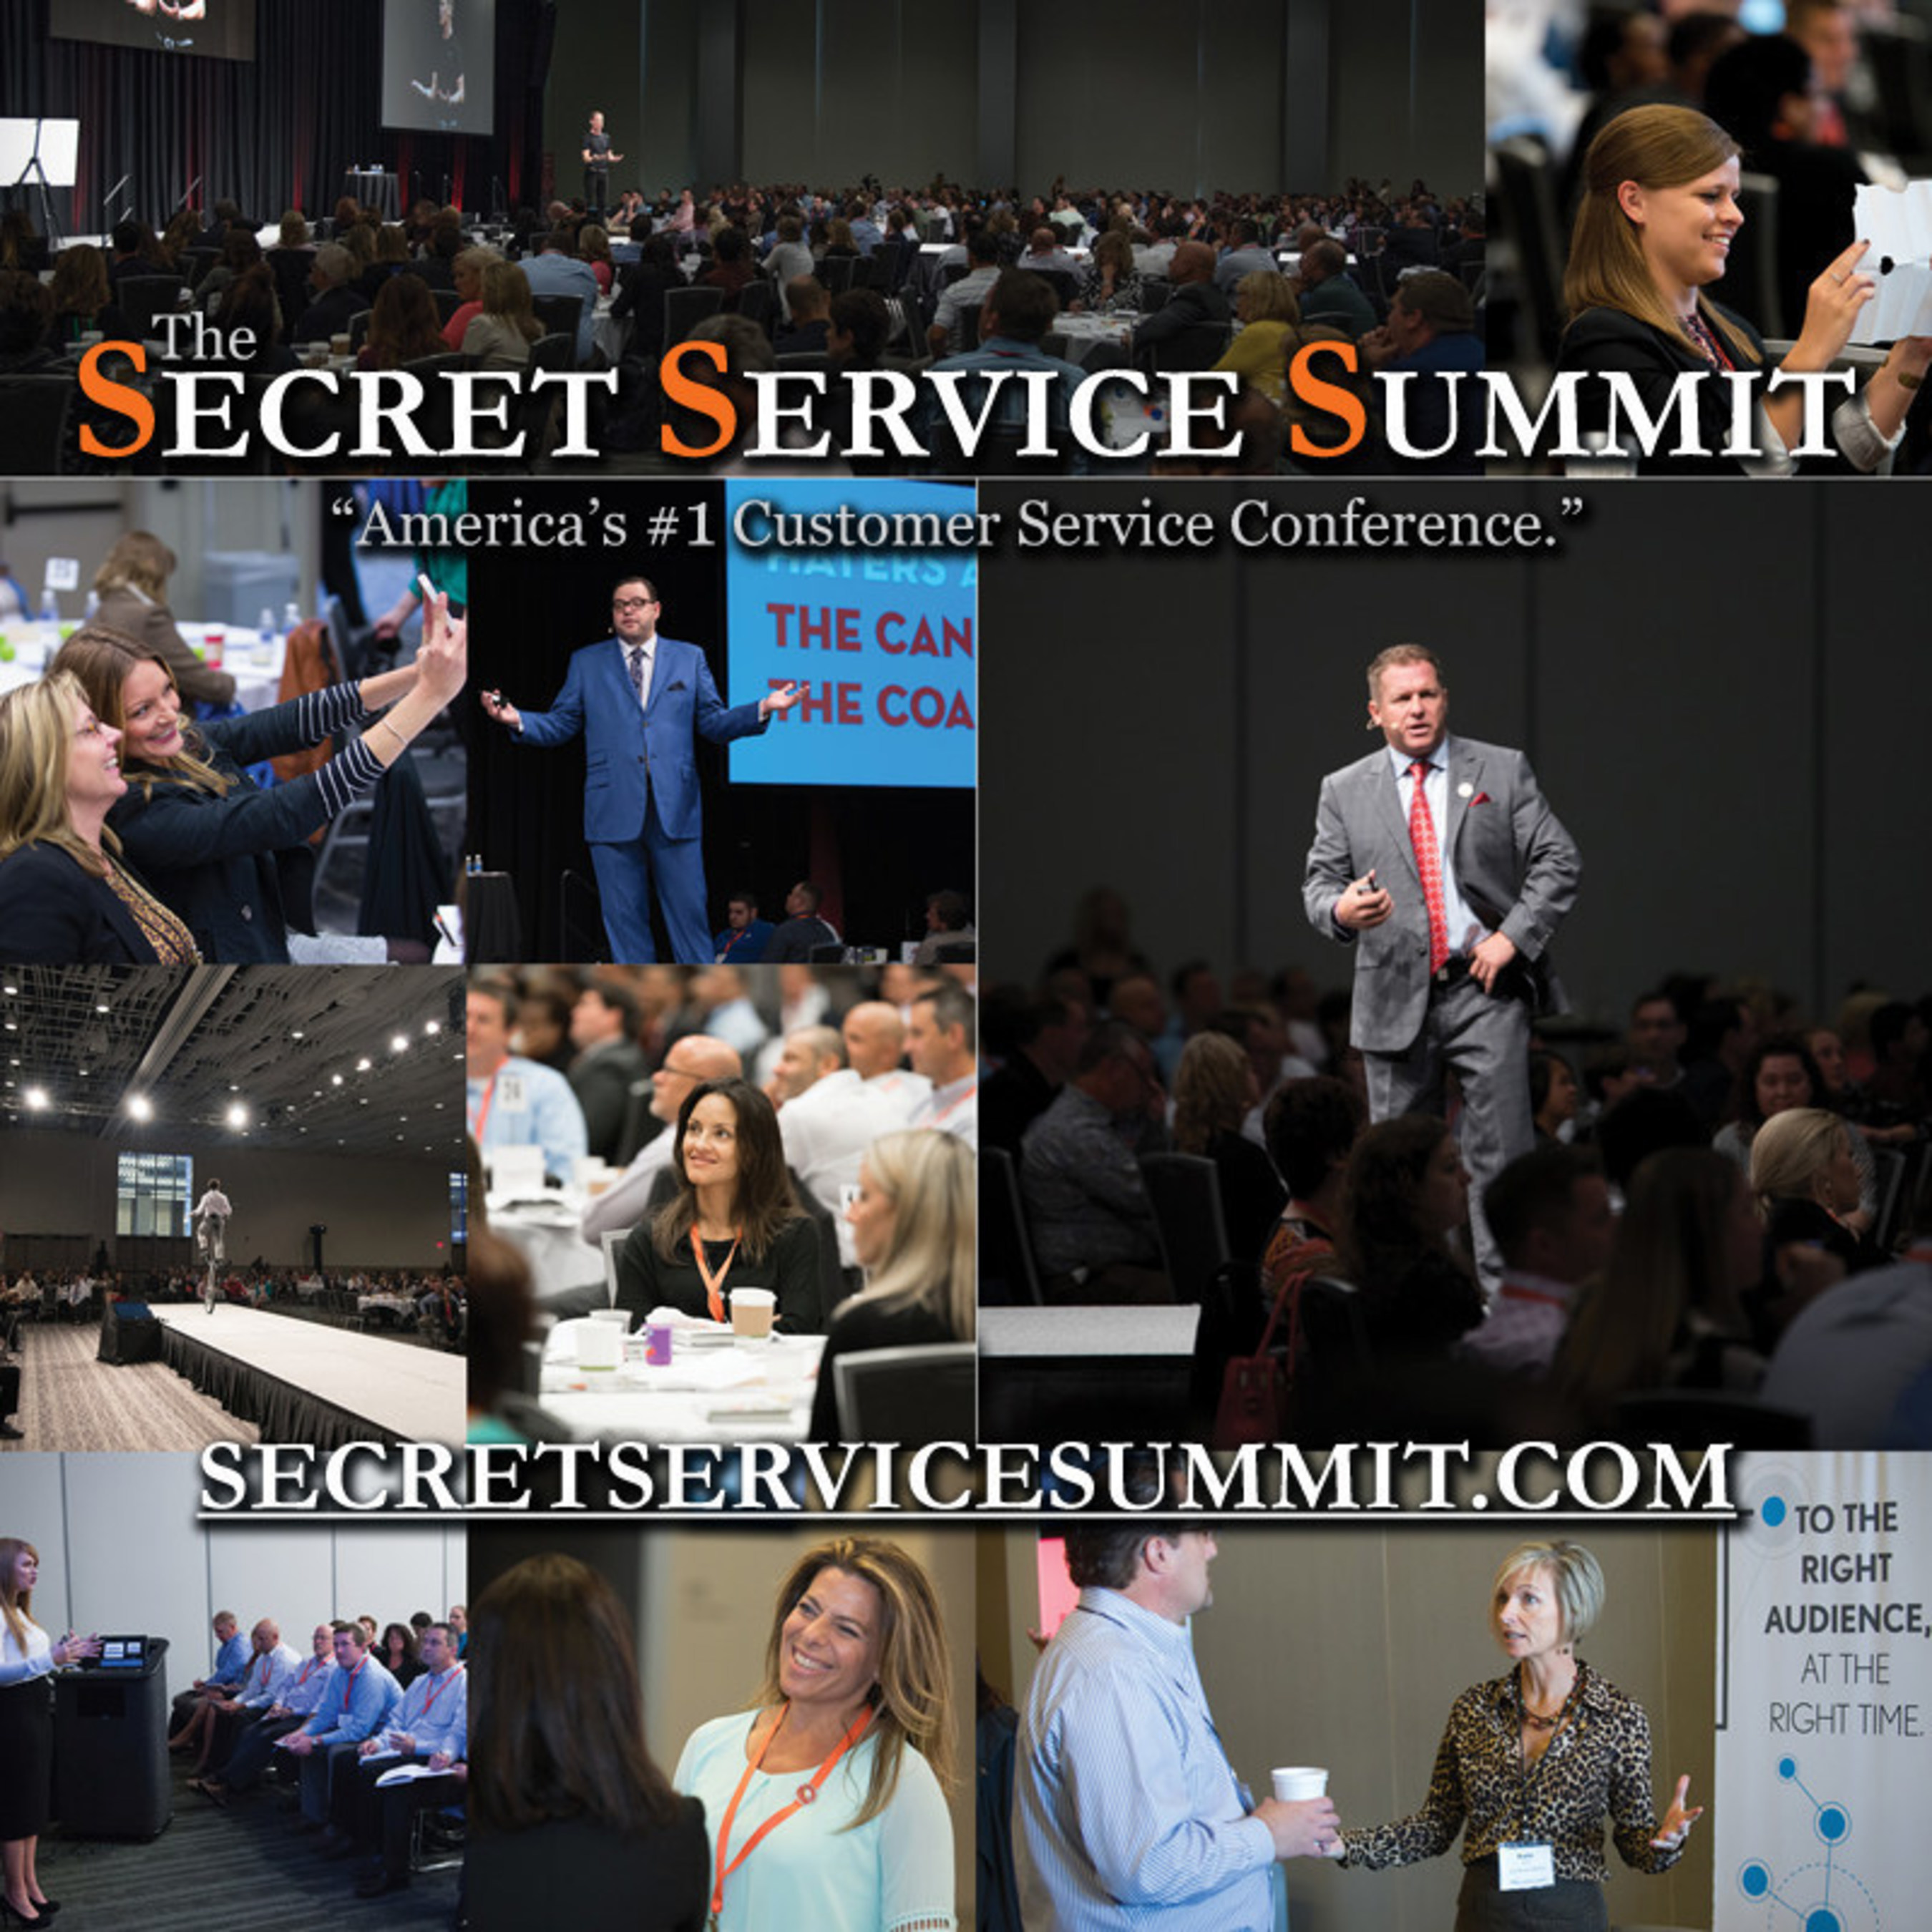 Top Customer Experience Leaders Gather for Secret Service Summit Conference in Cleveland